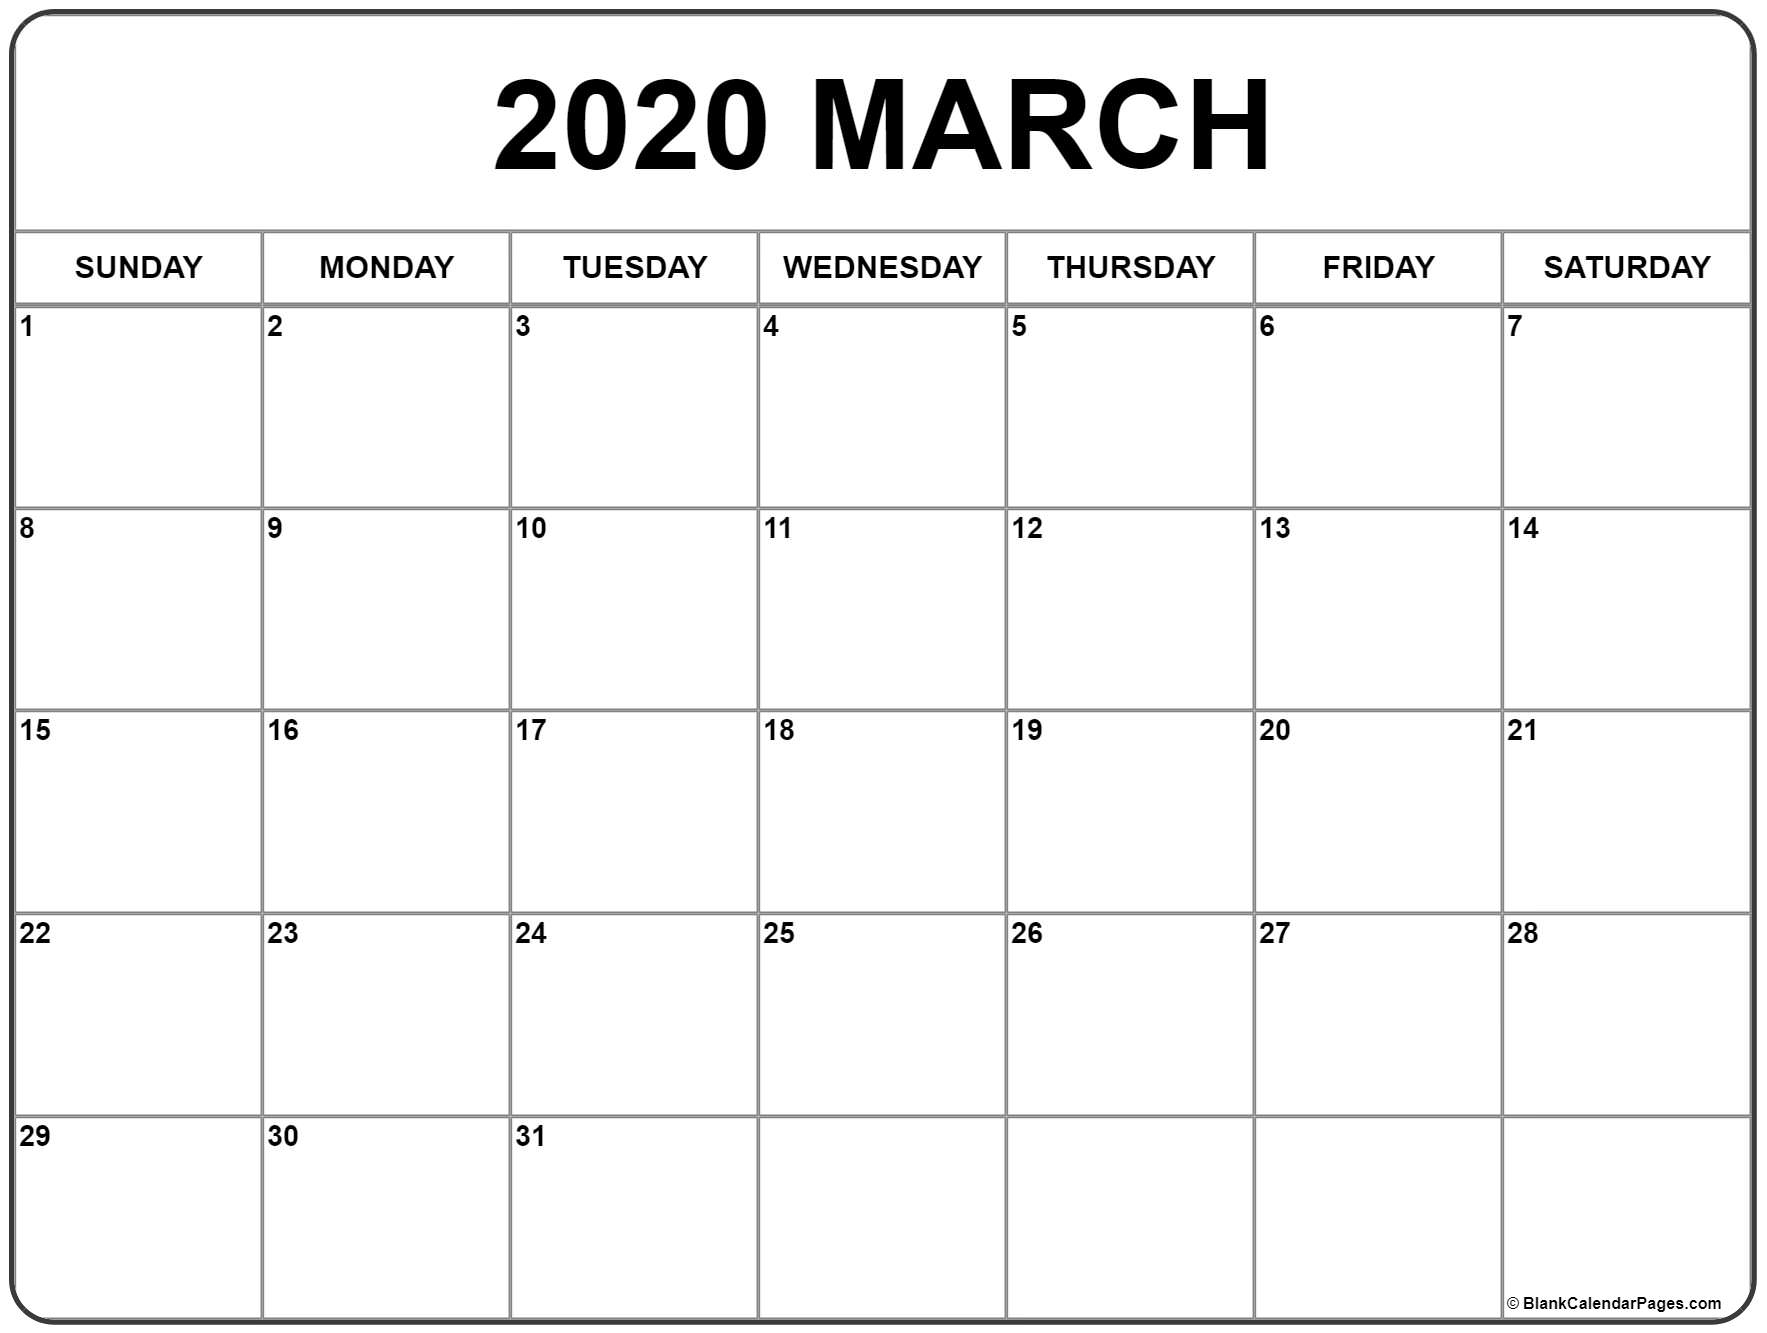 March 2020 Calendar | Free Printable Monthly Calendars pertaining to Free Printable 2020 Calendar With Space To Write